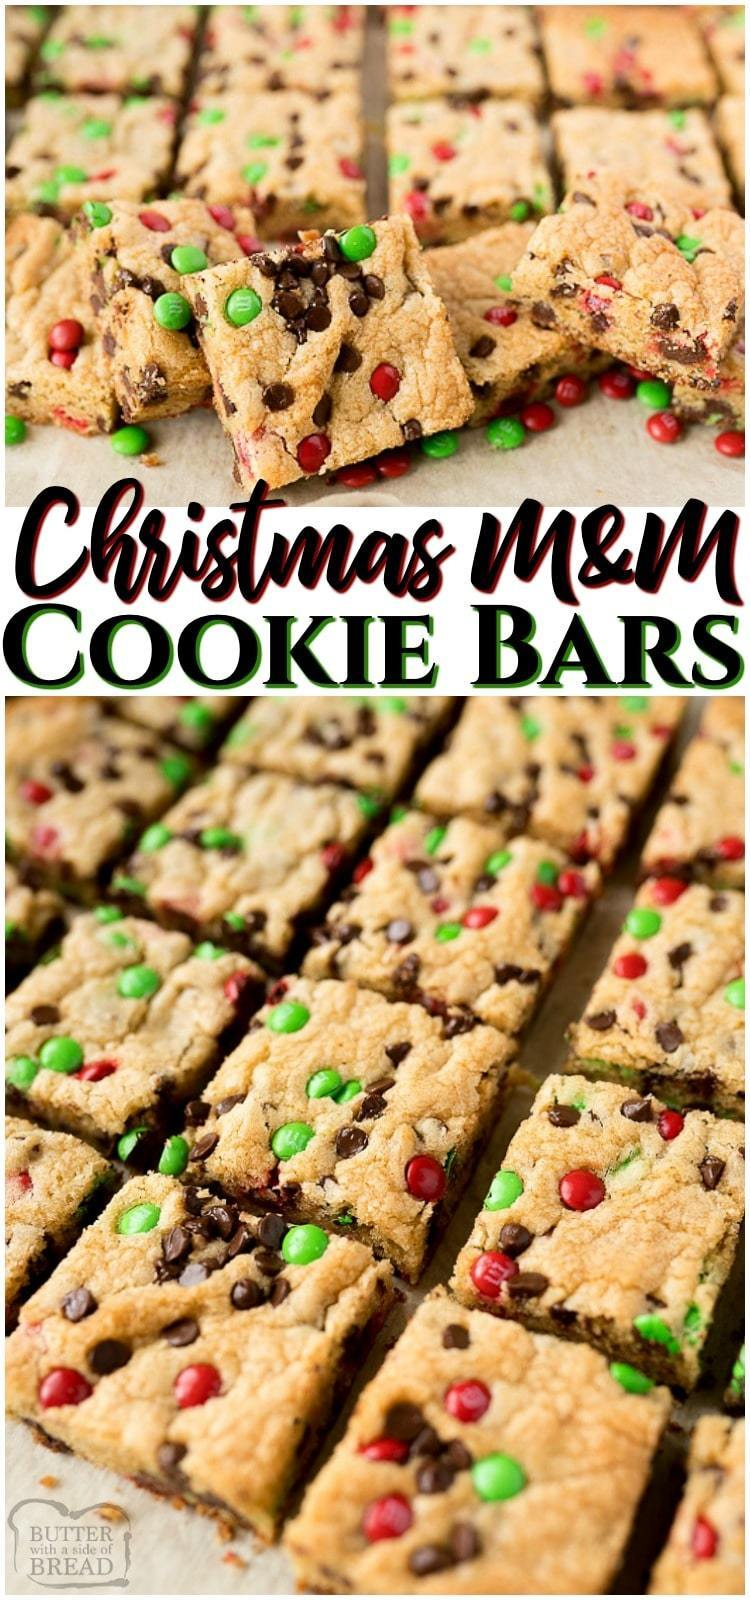 Christmas M&M Cookie Bars are a soft and tender chocolate chip cookie bar with festive green and red mini M&M's included! The soft and chewy Christmas cookie bar will be the star of the party! #Christmas #cookies #cookiebars #M&M #baking #holidays #desserts from BUTTER WITH A SIDE OF BREAD